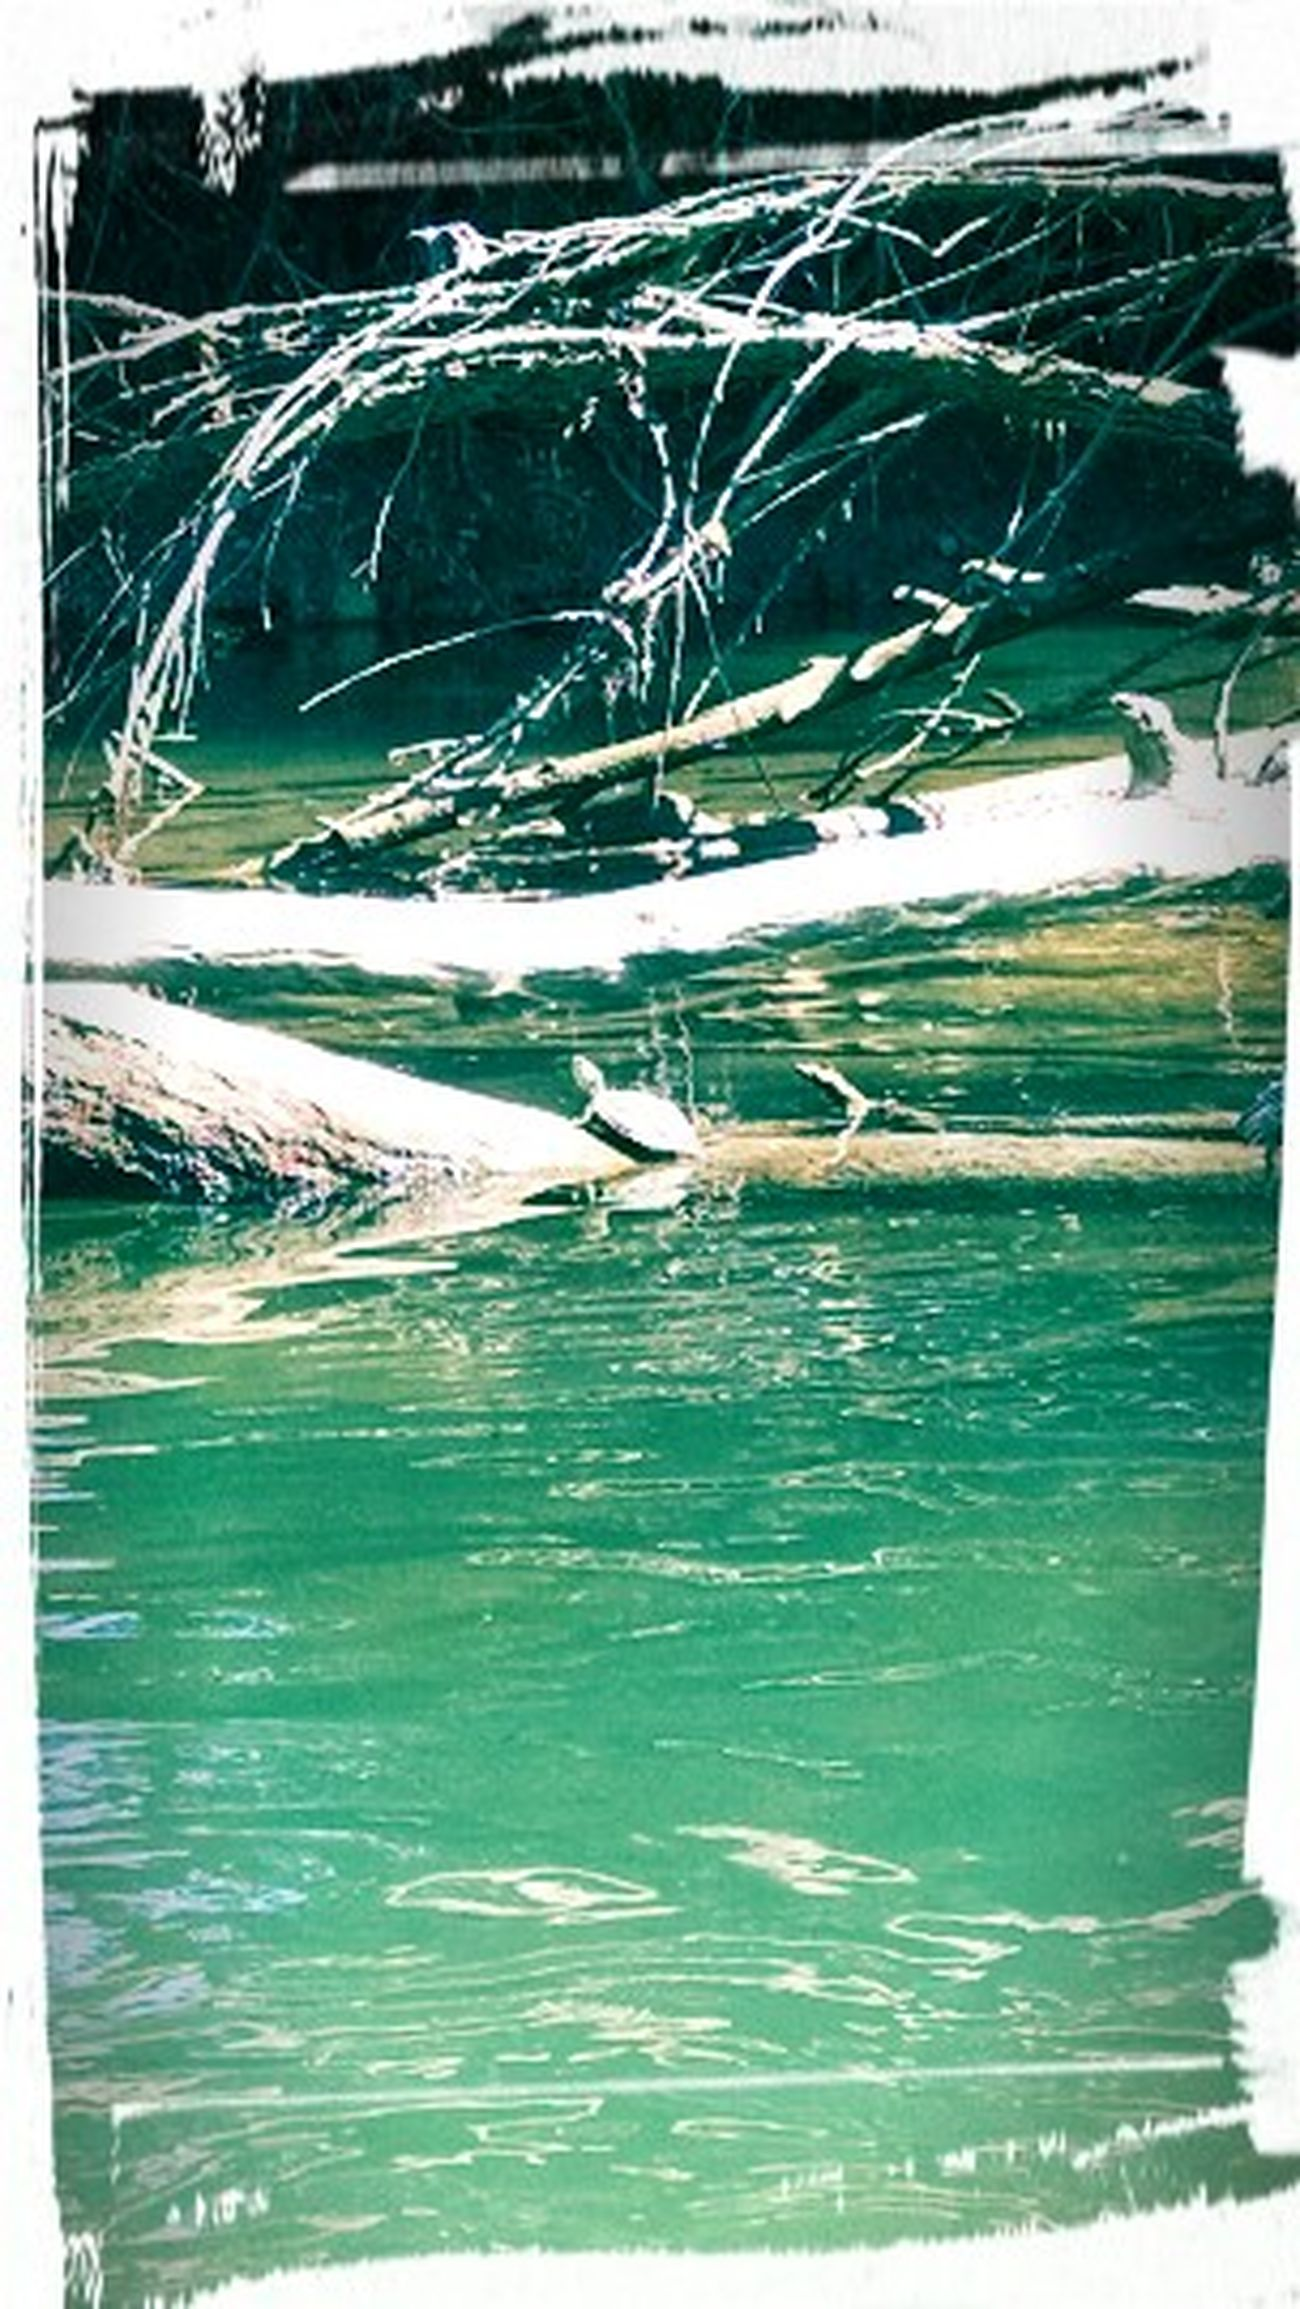 Turtles(: Creek Turtles